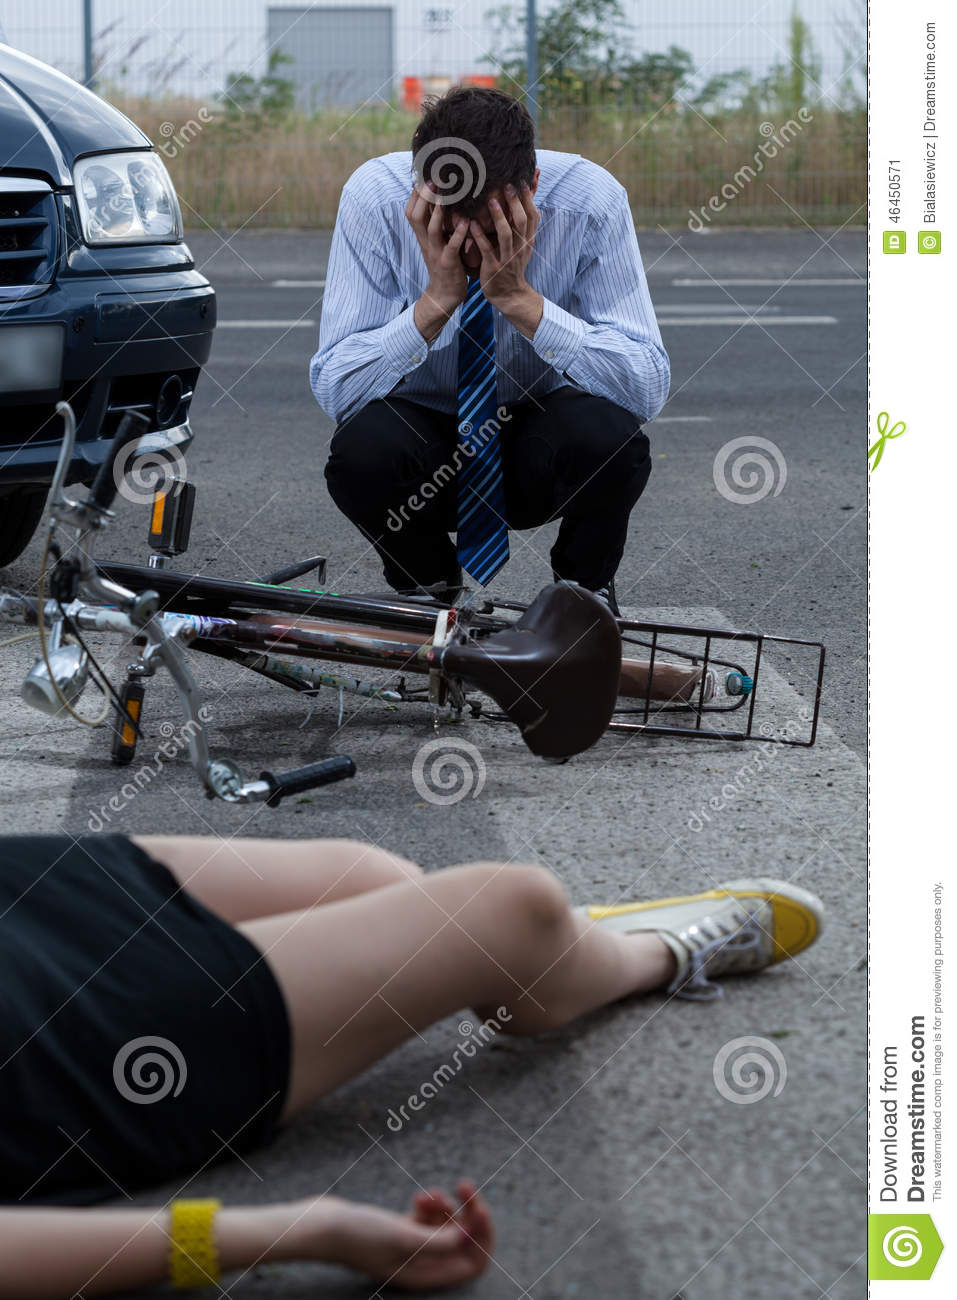 Car bike accident